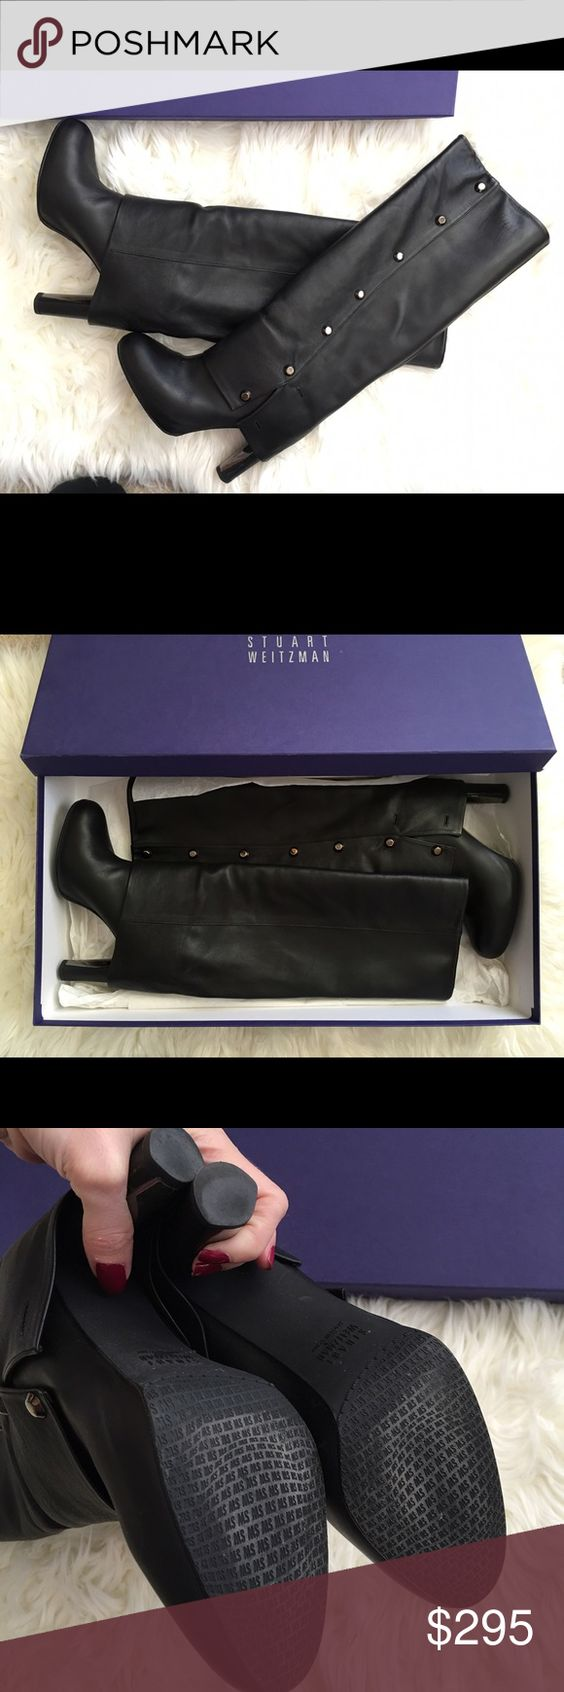 """EUC Stuart Weitzman SPATS Leather Knee-High Boot Excellent USED Condition. Worn a handful of times. Color: Black. U.S. Women's Size: 5.5. As seen on Nicole Scherzinger. Hematite {dark silver} button detailing. Fold-over button-detail creates a pant leg effect. Embellished hematite plate on inside of heel {see pic 4}. Heel height: 4"""". Hidden platform height: 1"""". Shaft height: 14"""". Pull-on style - no zips. Stuart Weitzman initial-stamped rubber sole. Made in Spain. Includes original Stuart…"""